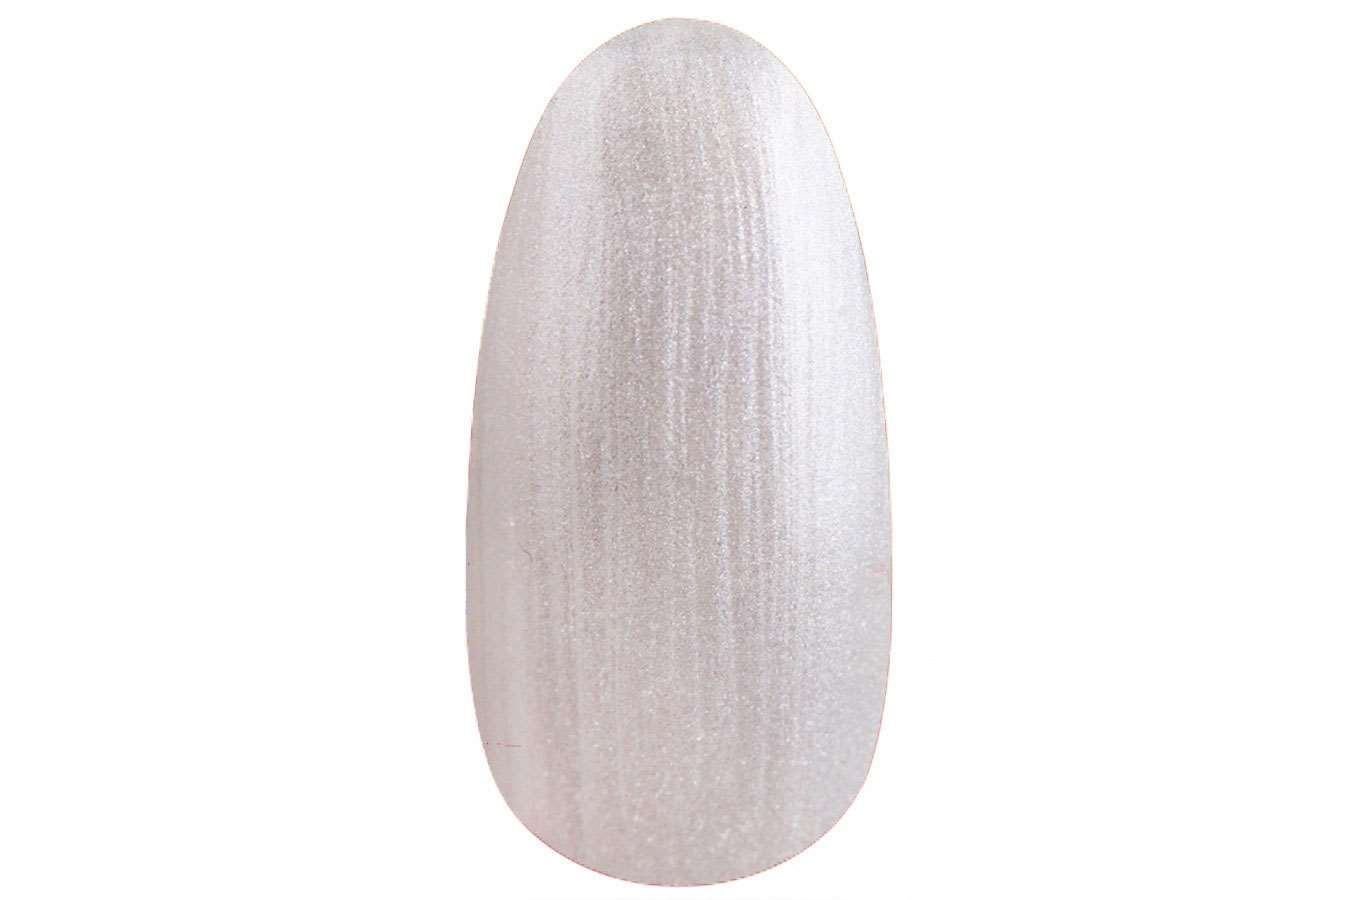 040 Polish Gel Franela,8ml